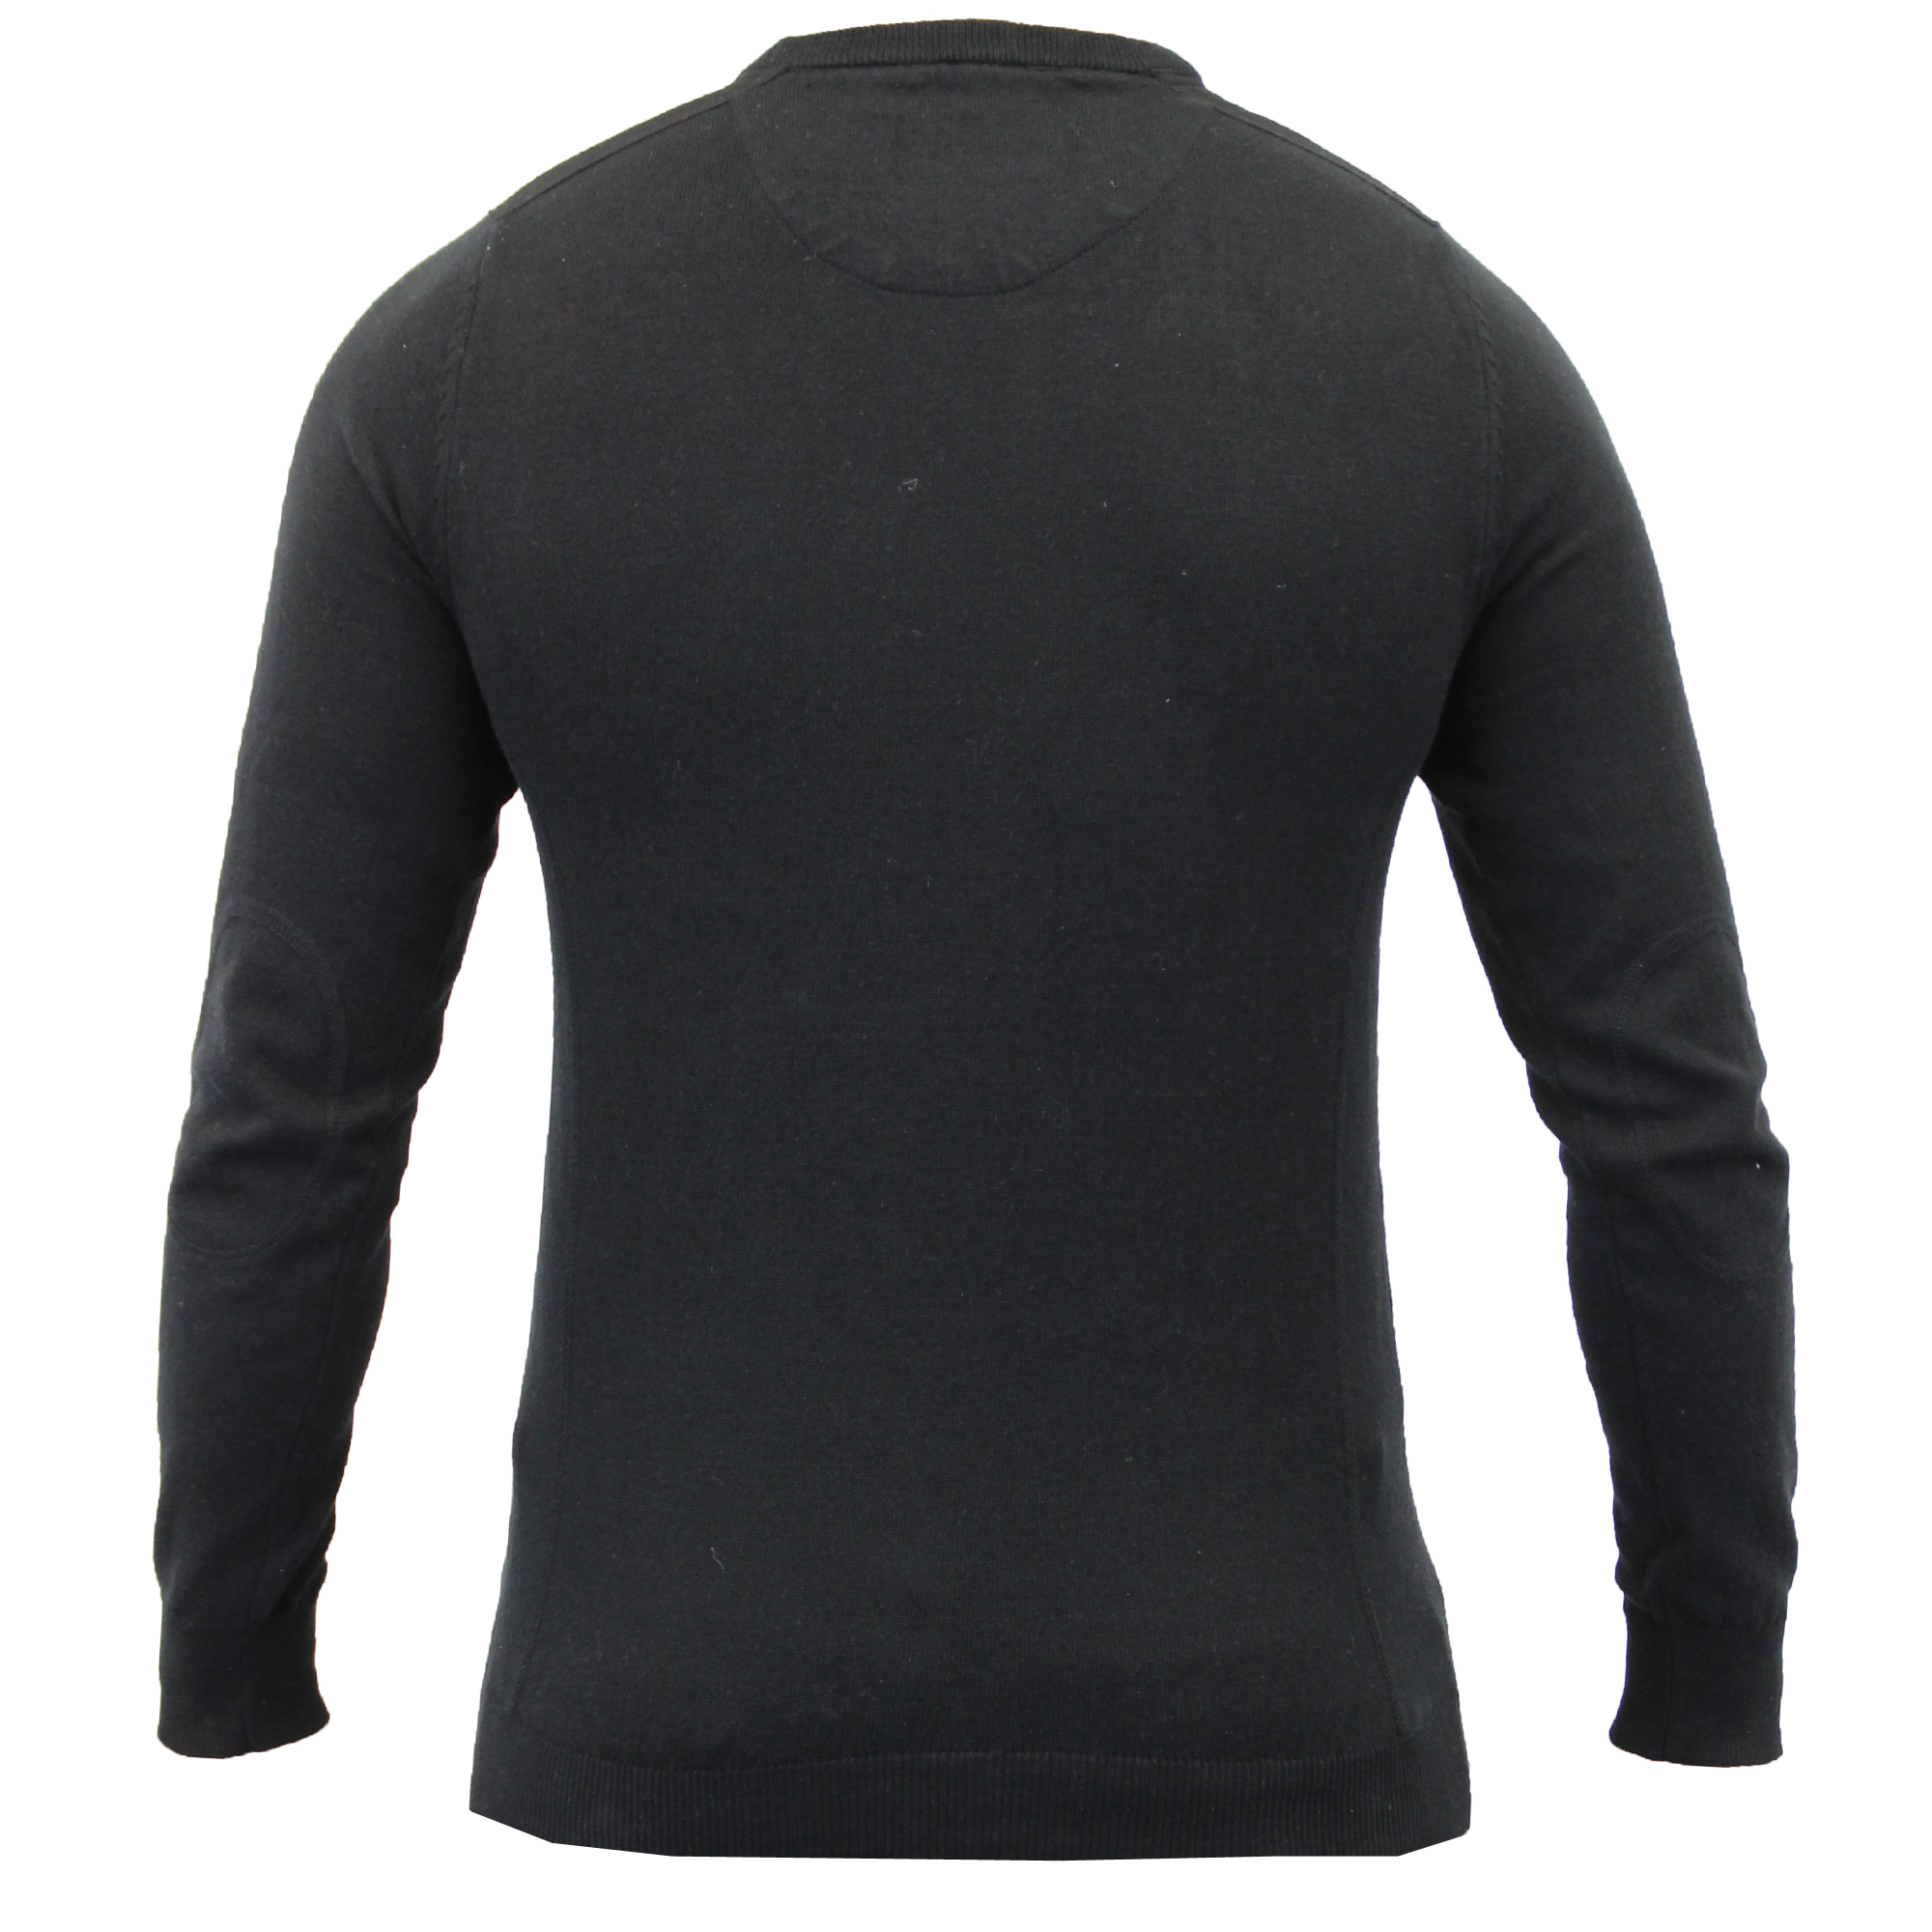 Mens-Jumper-Threadbare-Knitted-Top-Sweater-Pullover-Patches-Crew-Funnel-Neck-New thumbnail 3